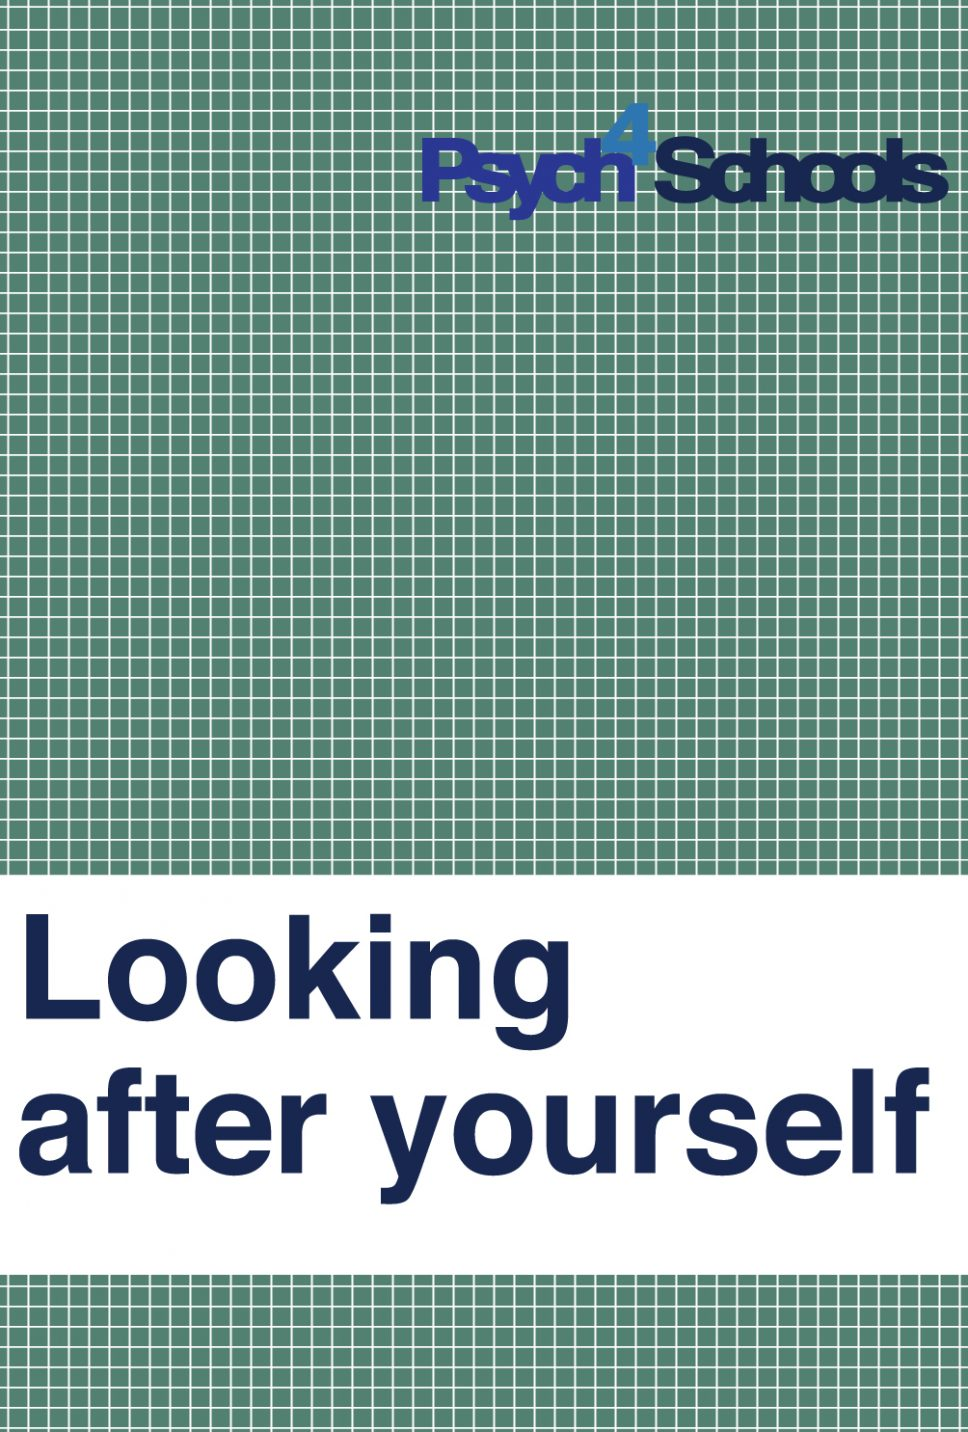 LOOKING-AFTER-YOURSELF